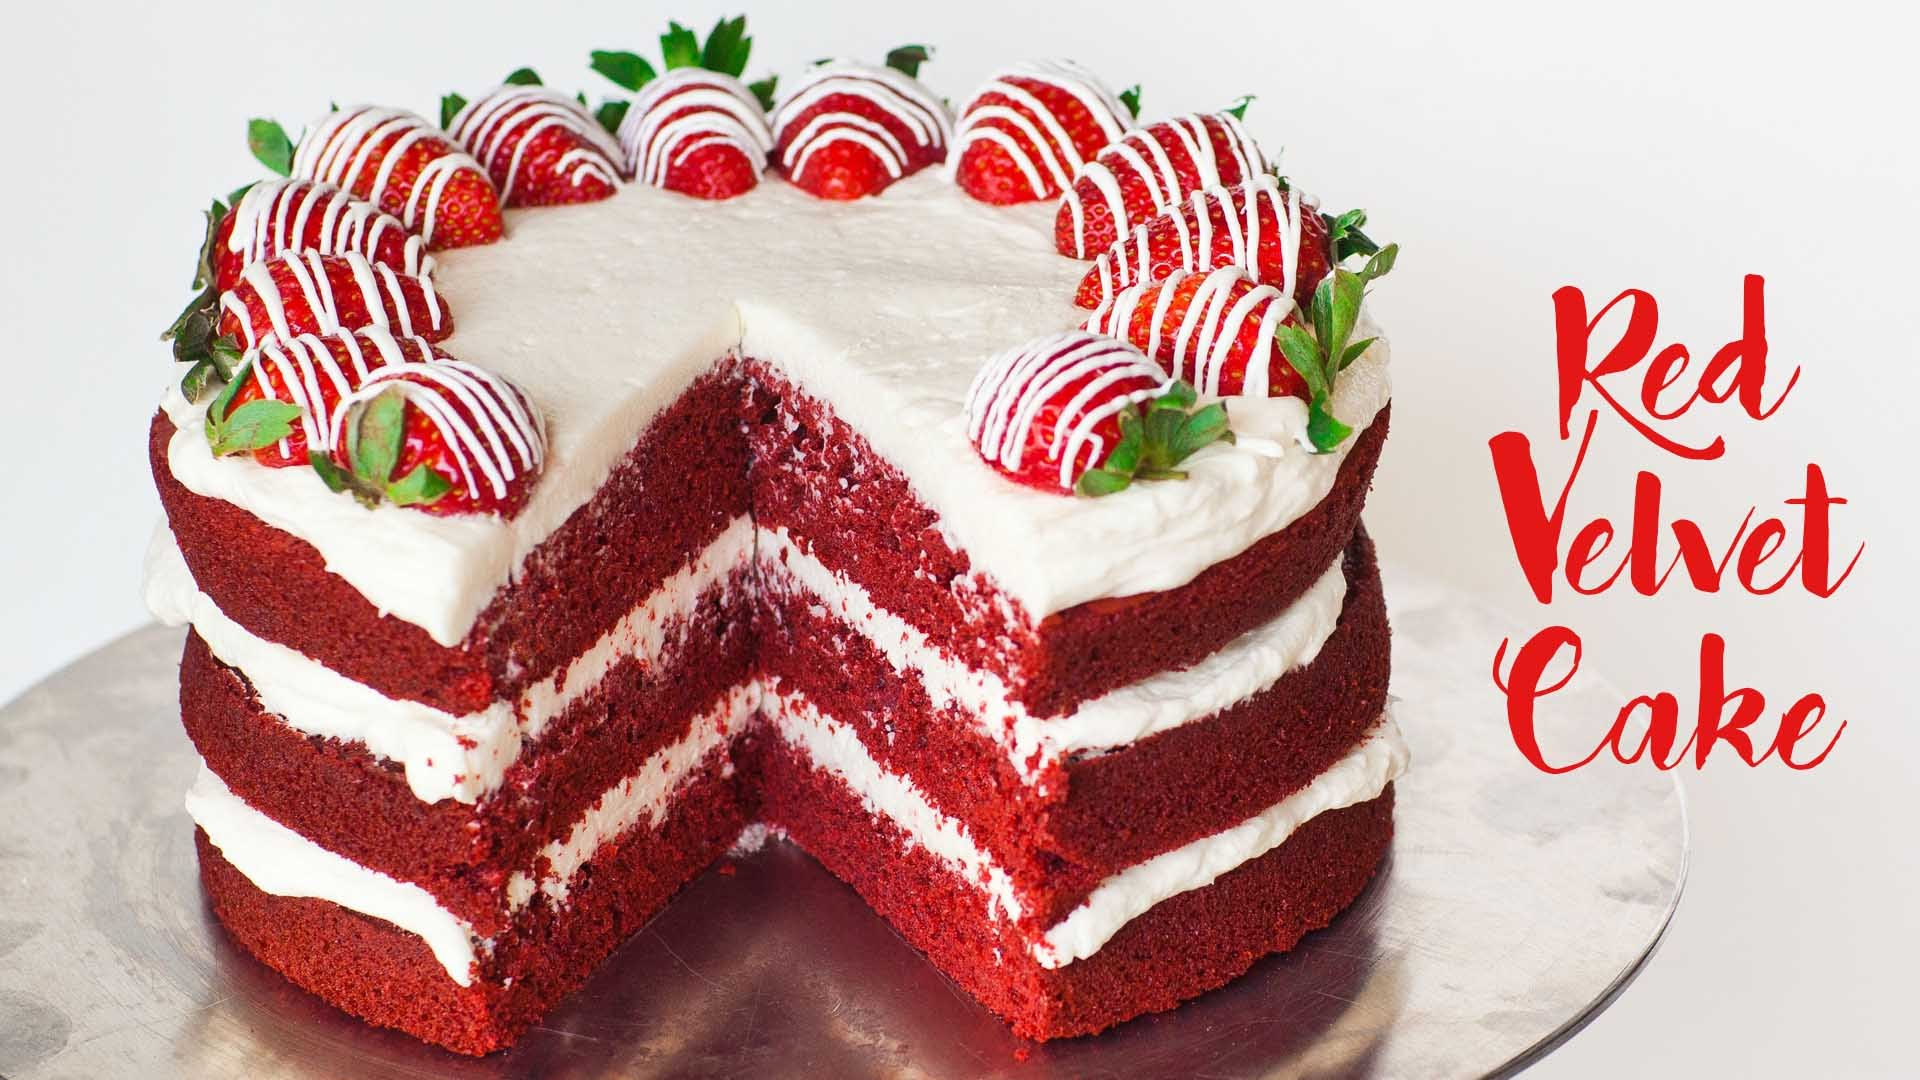 A Red Velvet Cake That Will Absolutely Have Your Mouth Watering